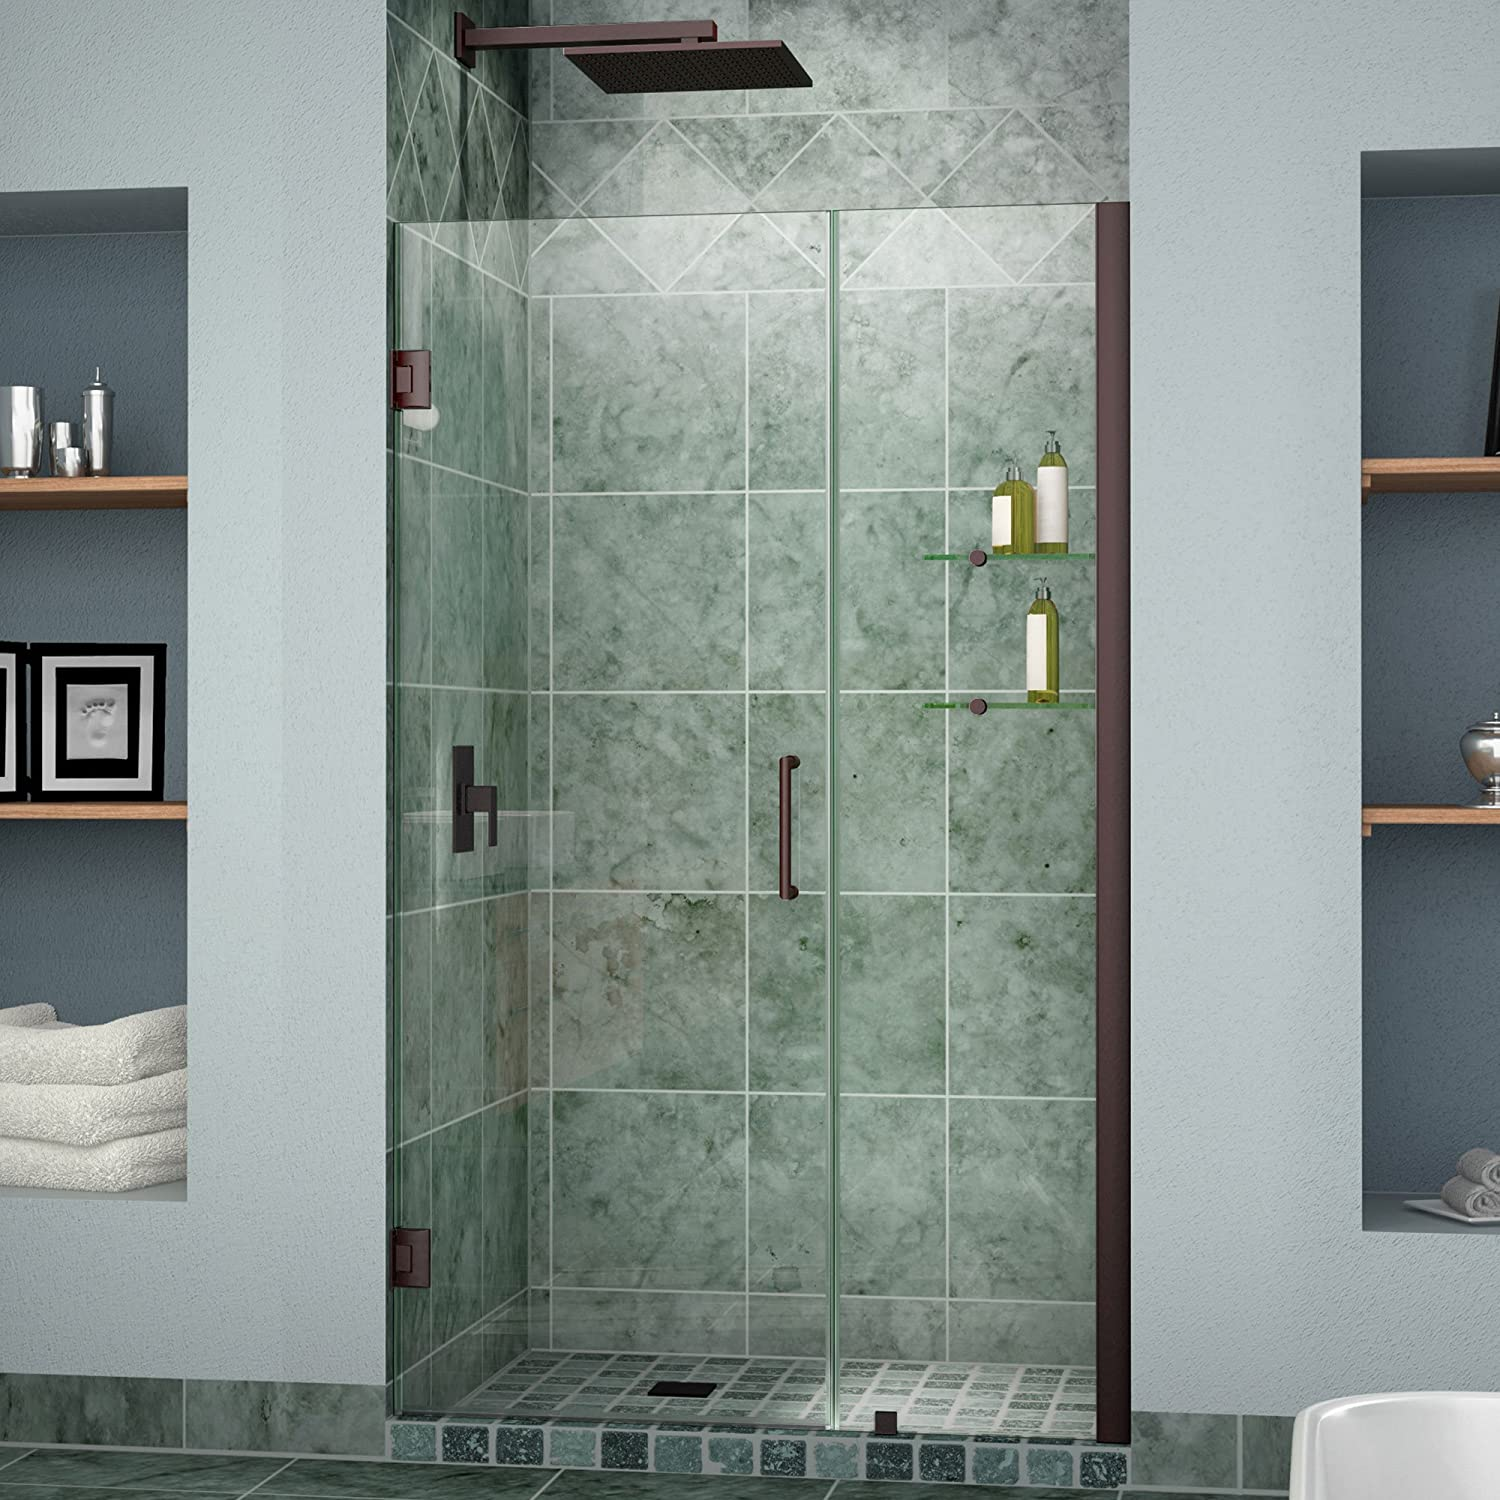 Dreamline unidoor 47 48 in width frameless hinged shower door 38 dreamline unidoor 47 48 in width frameless hinged shower door 38 glass oil rubbed bronze finish amazon eventshaper